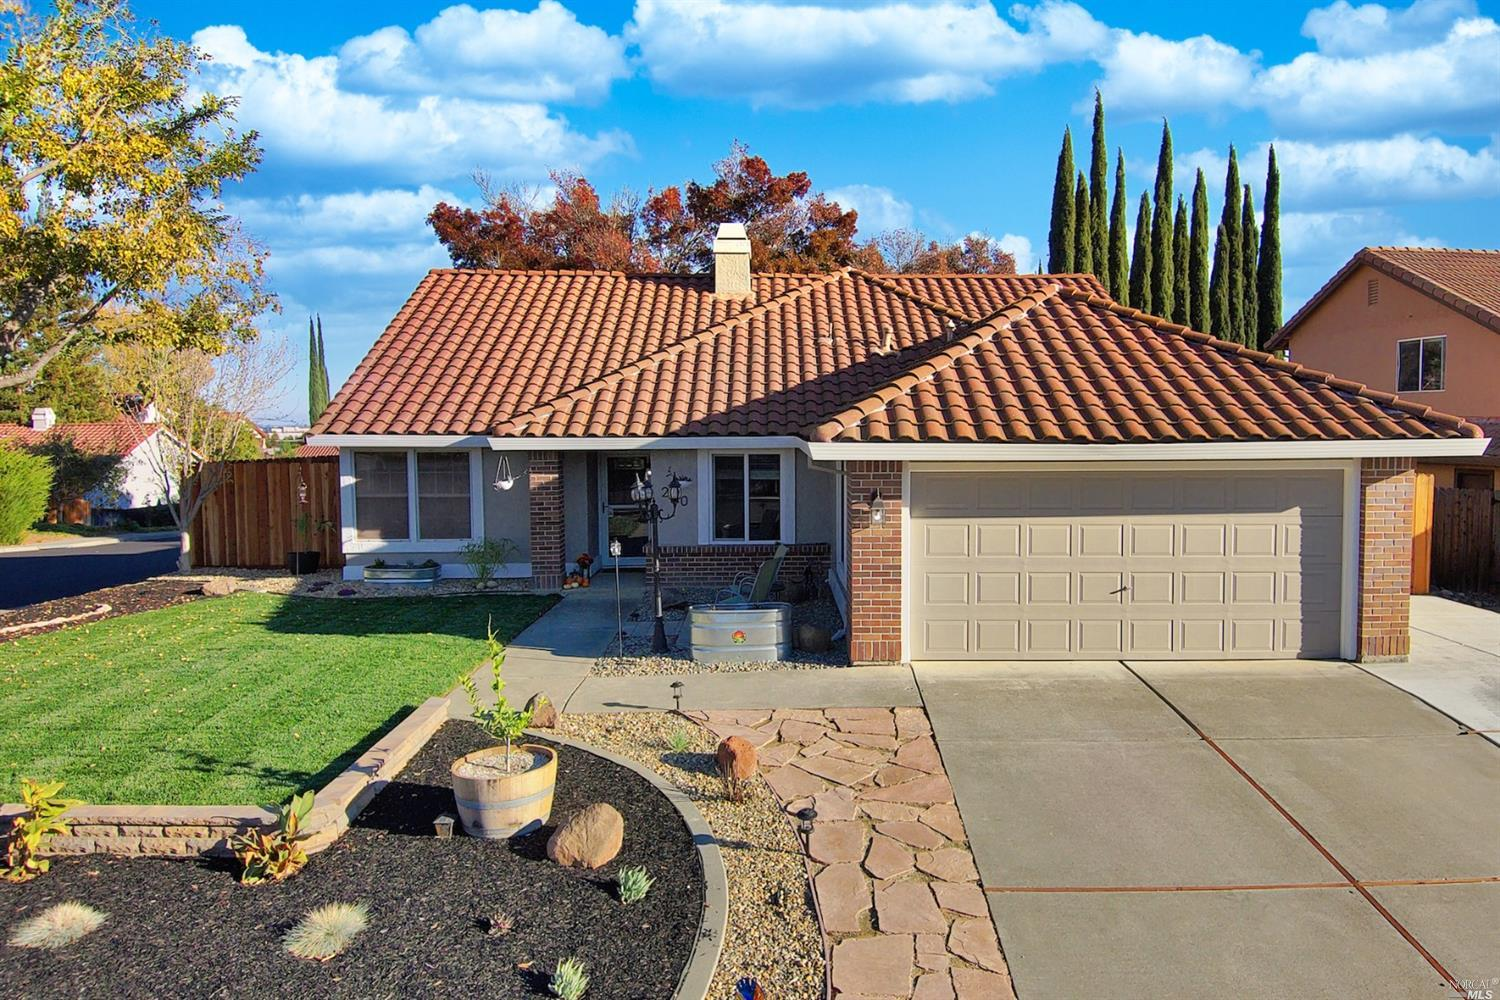 Desirable Browns Valley Updated Single-Story Home Located In A Court With Views Of The Hills! This B